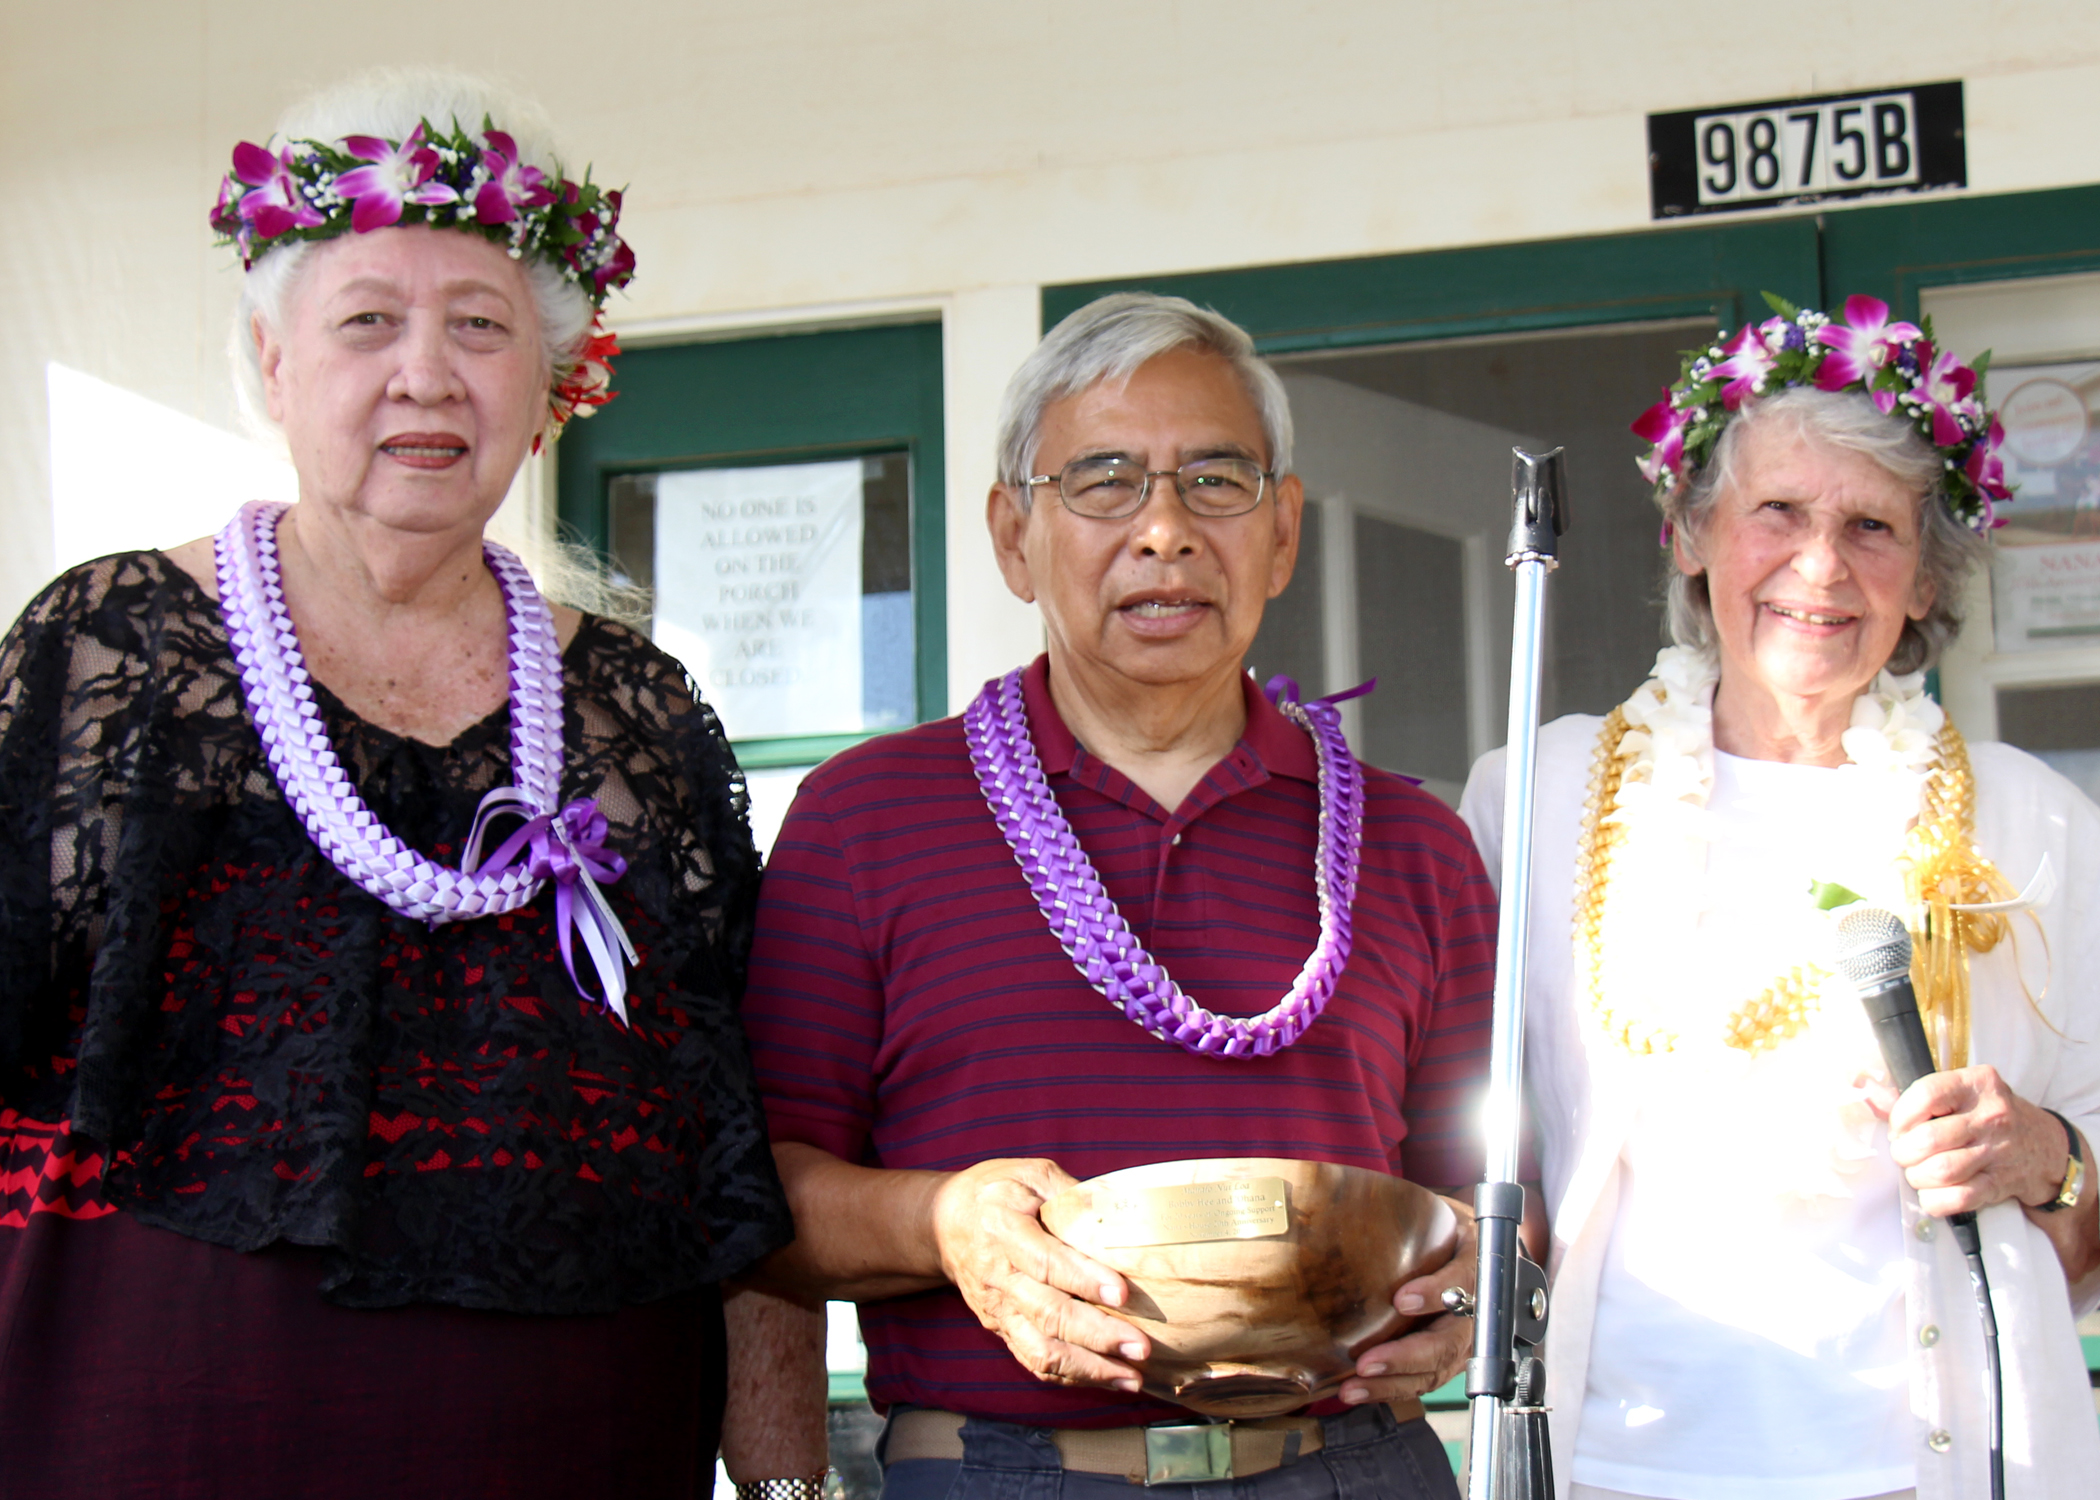 Mahalo Bobby Hee & Family! Nana's House Co-Founders Hana Montgomery (left) & Nancy Golden (right) present land owner Bobby Hee with a Koa bowl honoring him & his ohana for allowing the use of their land for this Family Center.